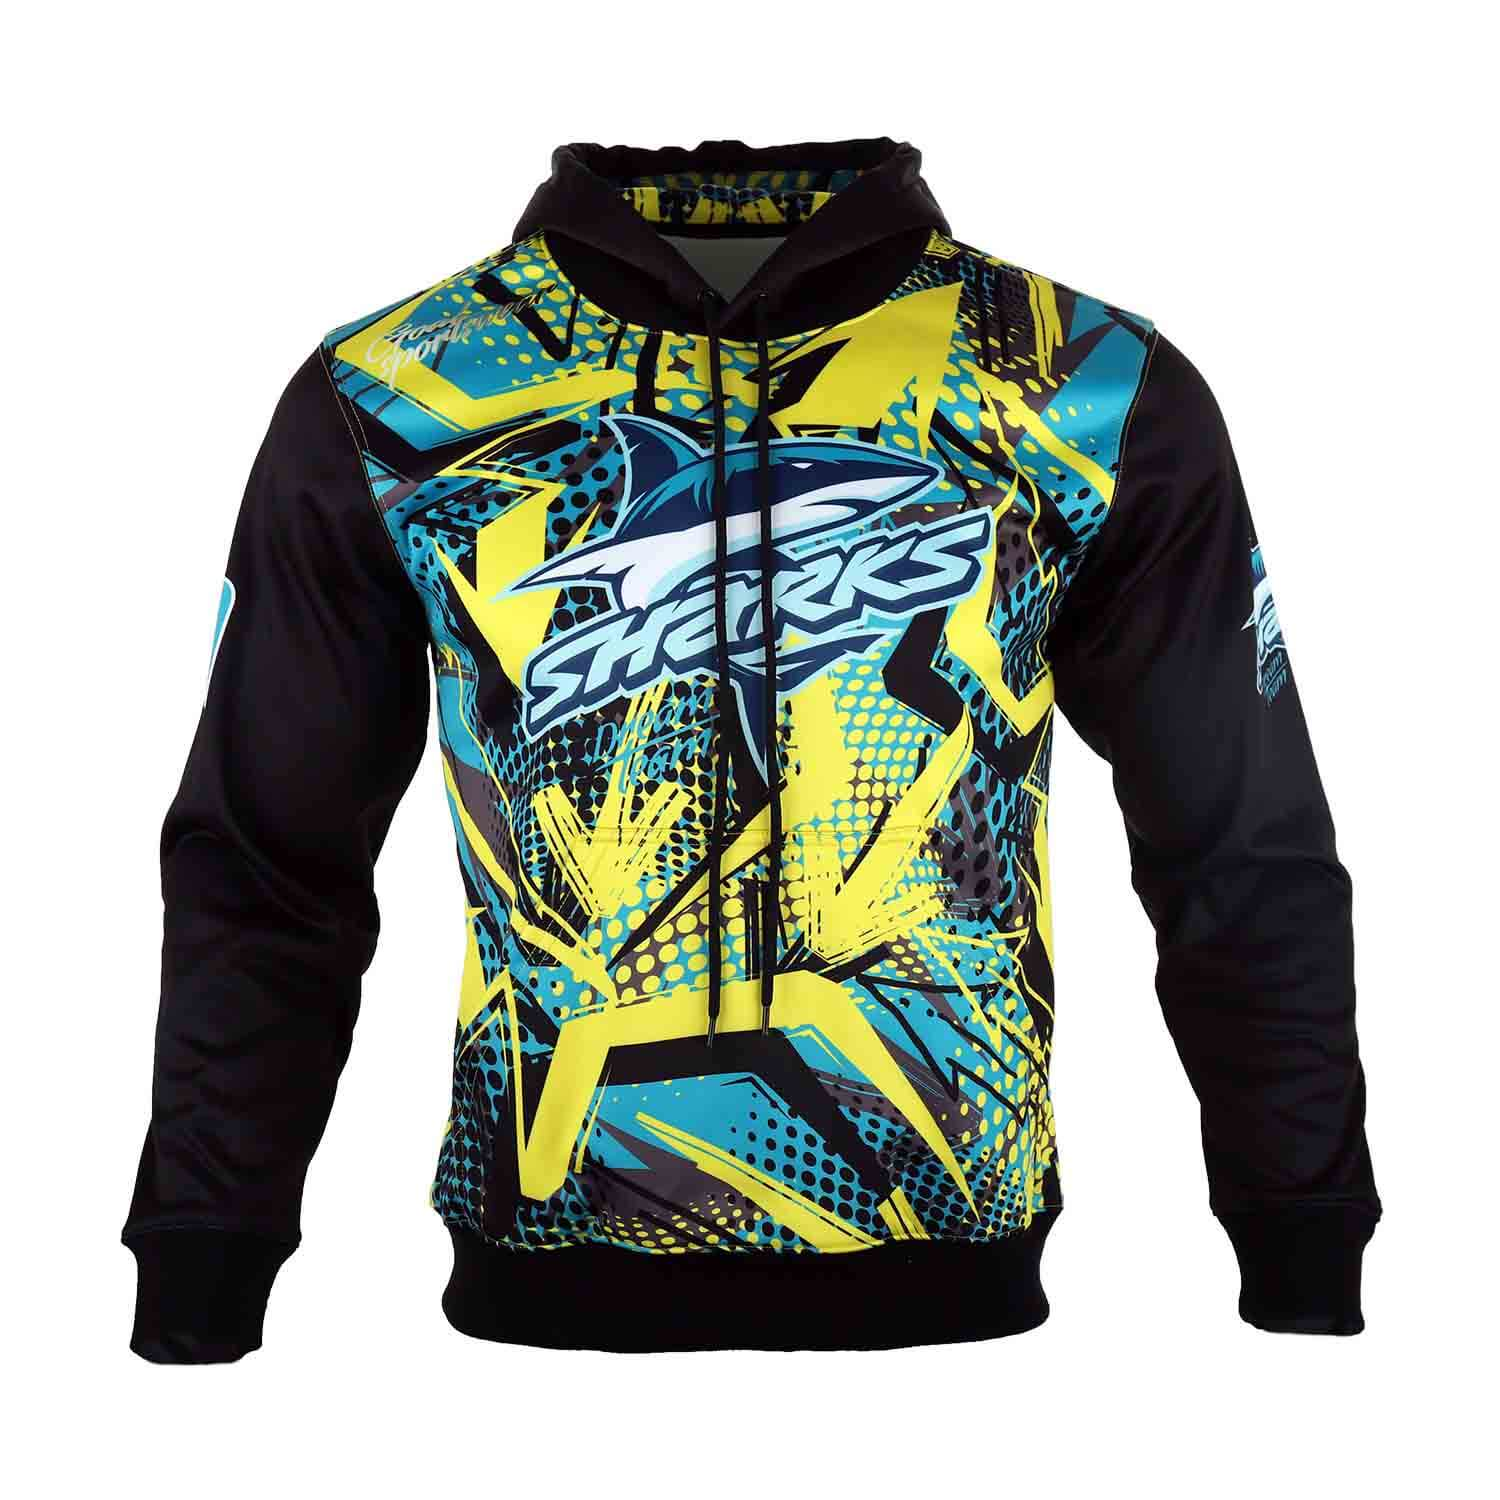 1-Sublimated Pull Over hoodie